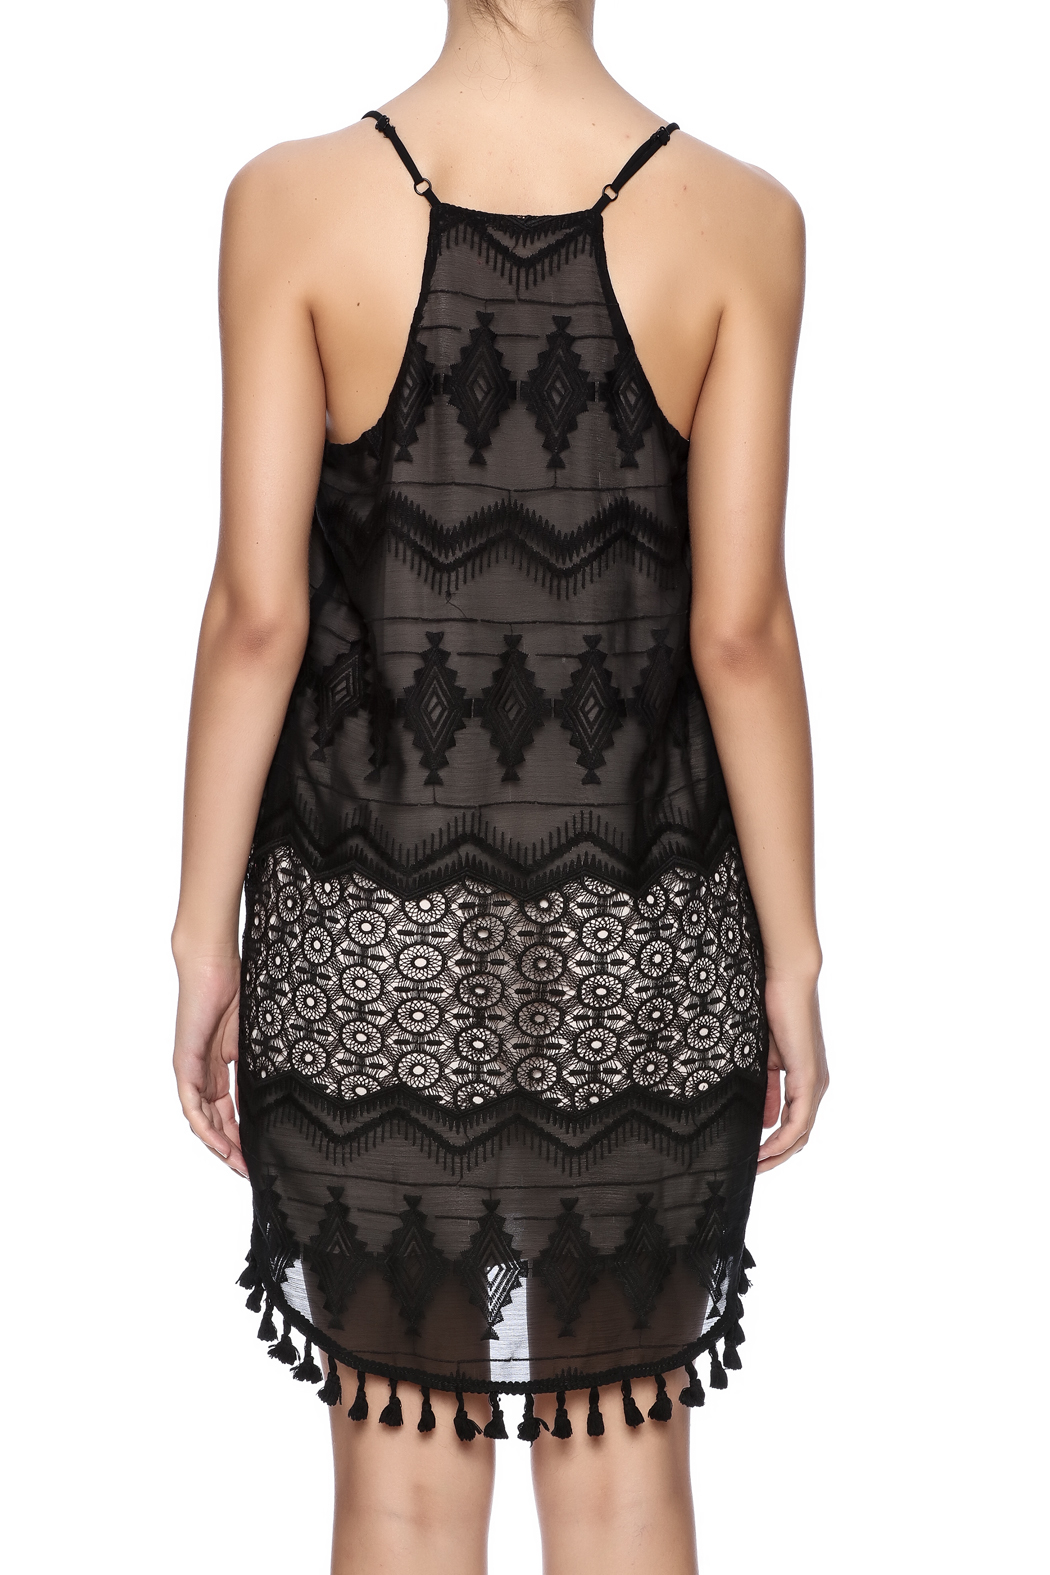 Eight Sixty Black Lace Dress - Back Cropped Image